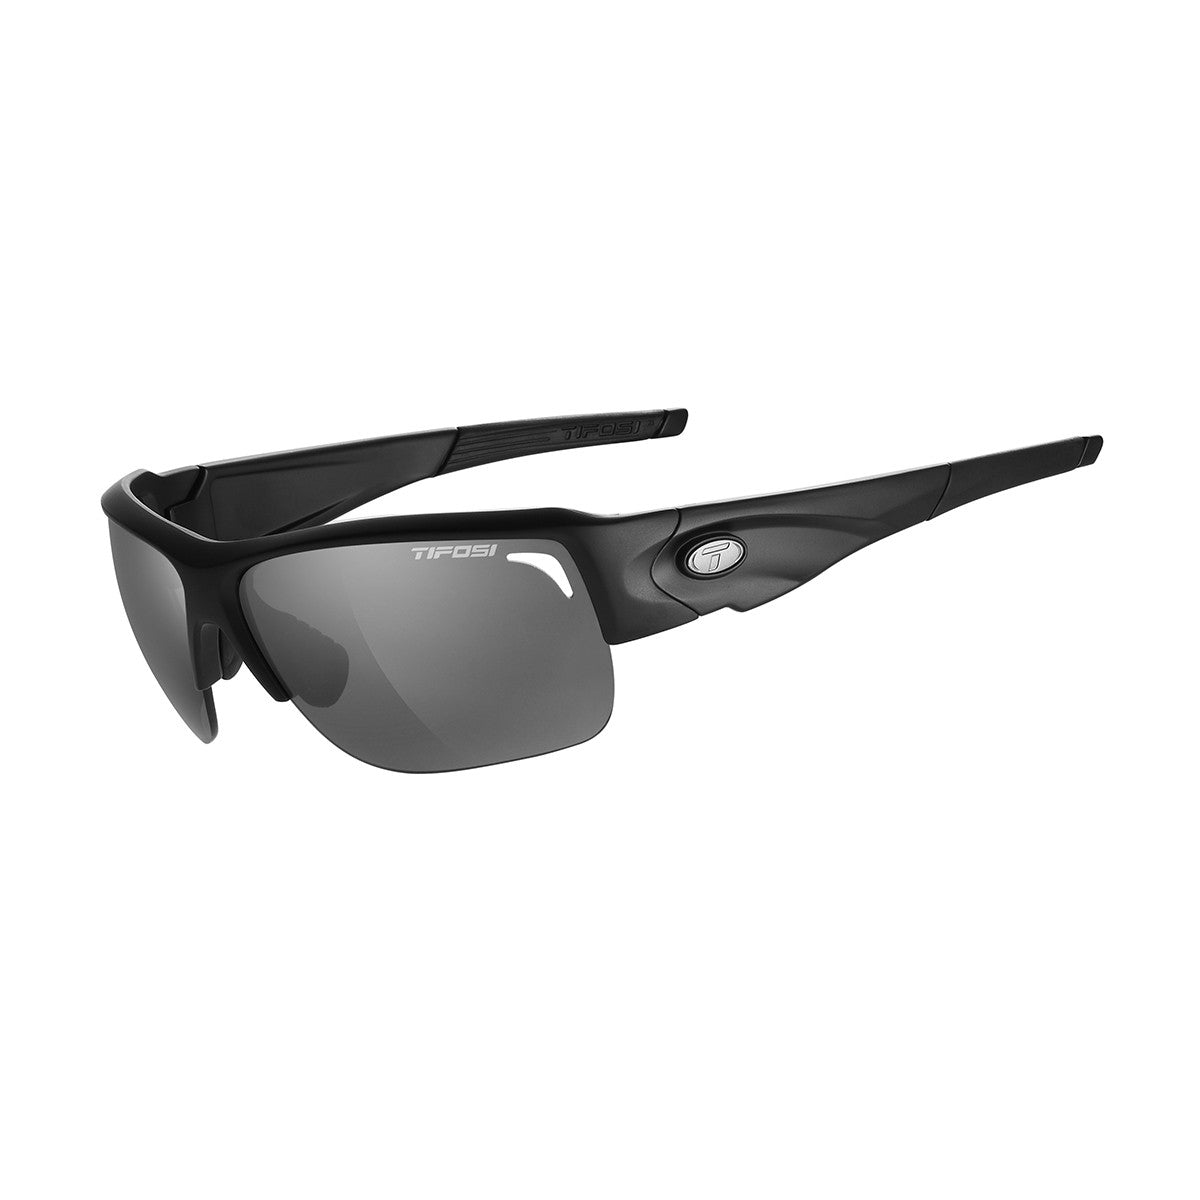 TIFOSI ELDER INTERCHANGEABLE LENS SUNGLASSES